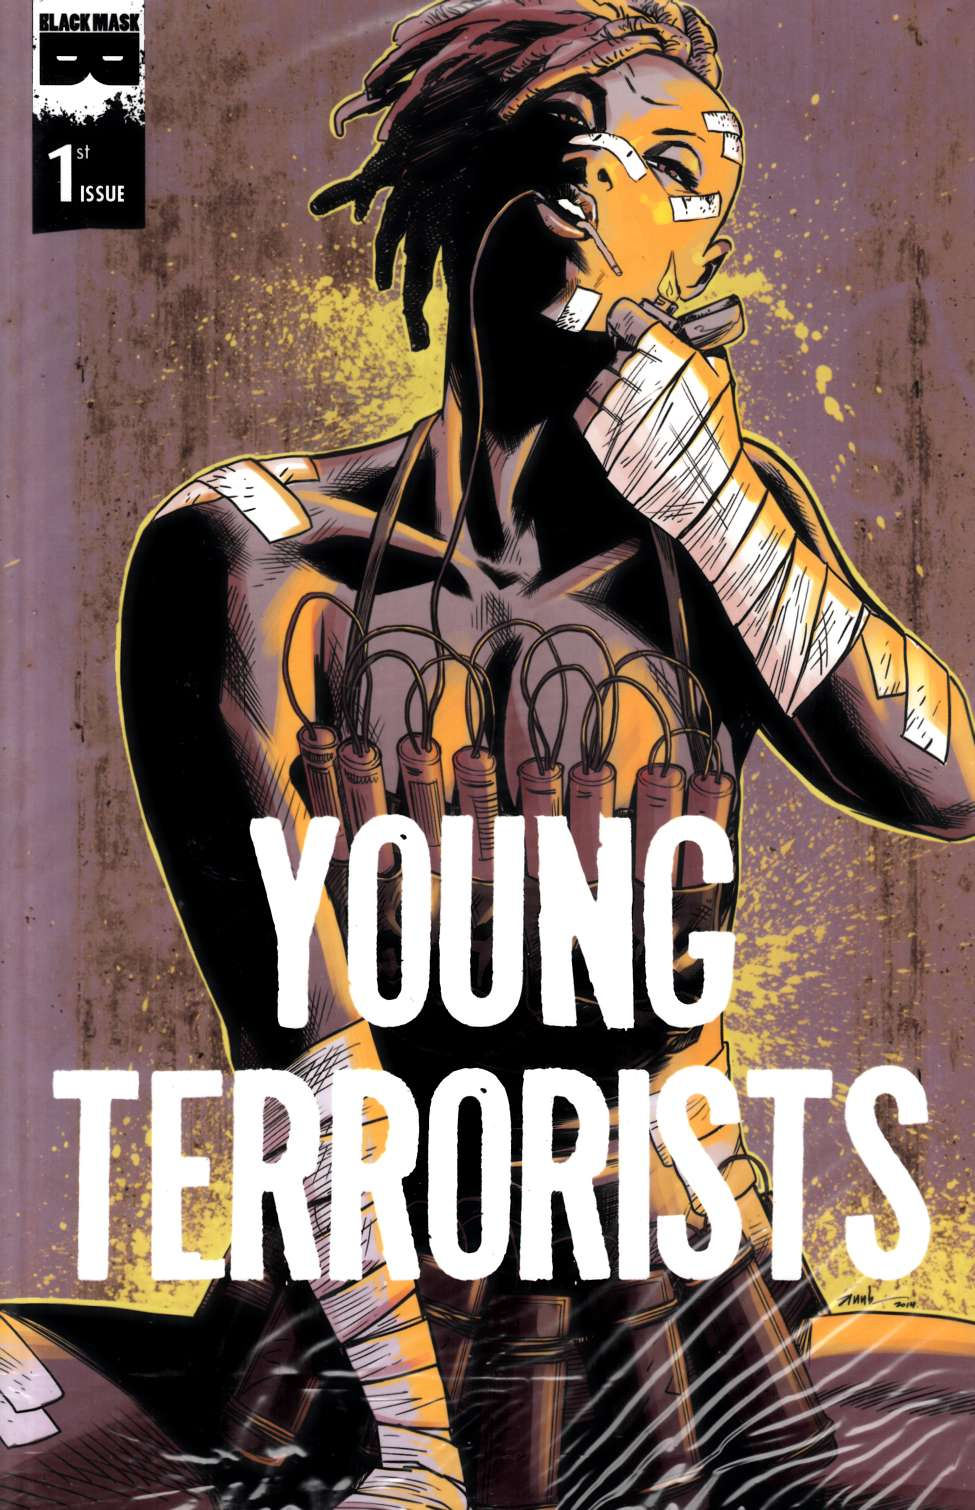 Young Terrorists #1 Cover A [Black Mask Comic] THUMBNAIL